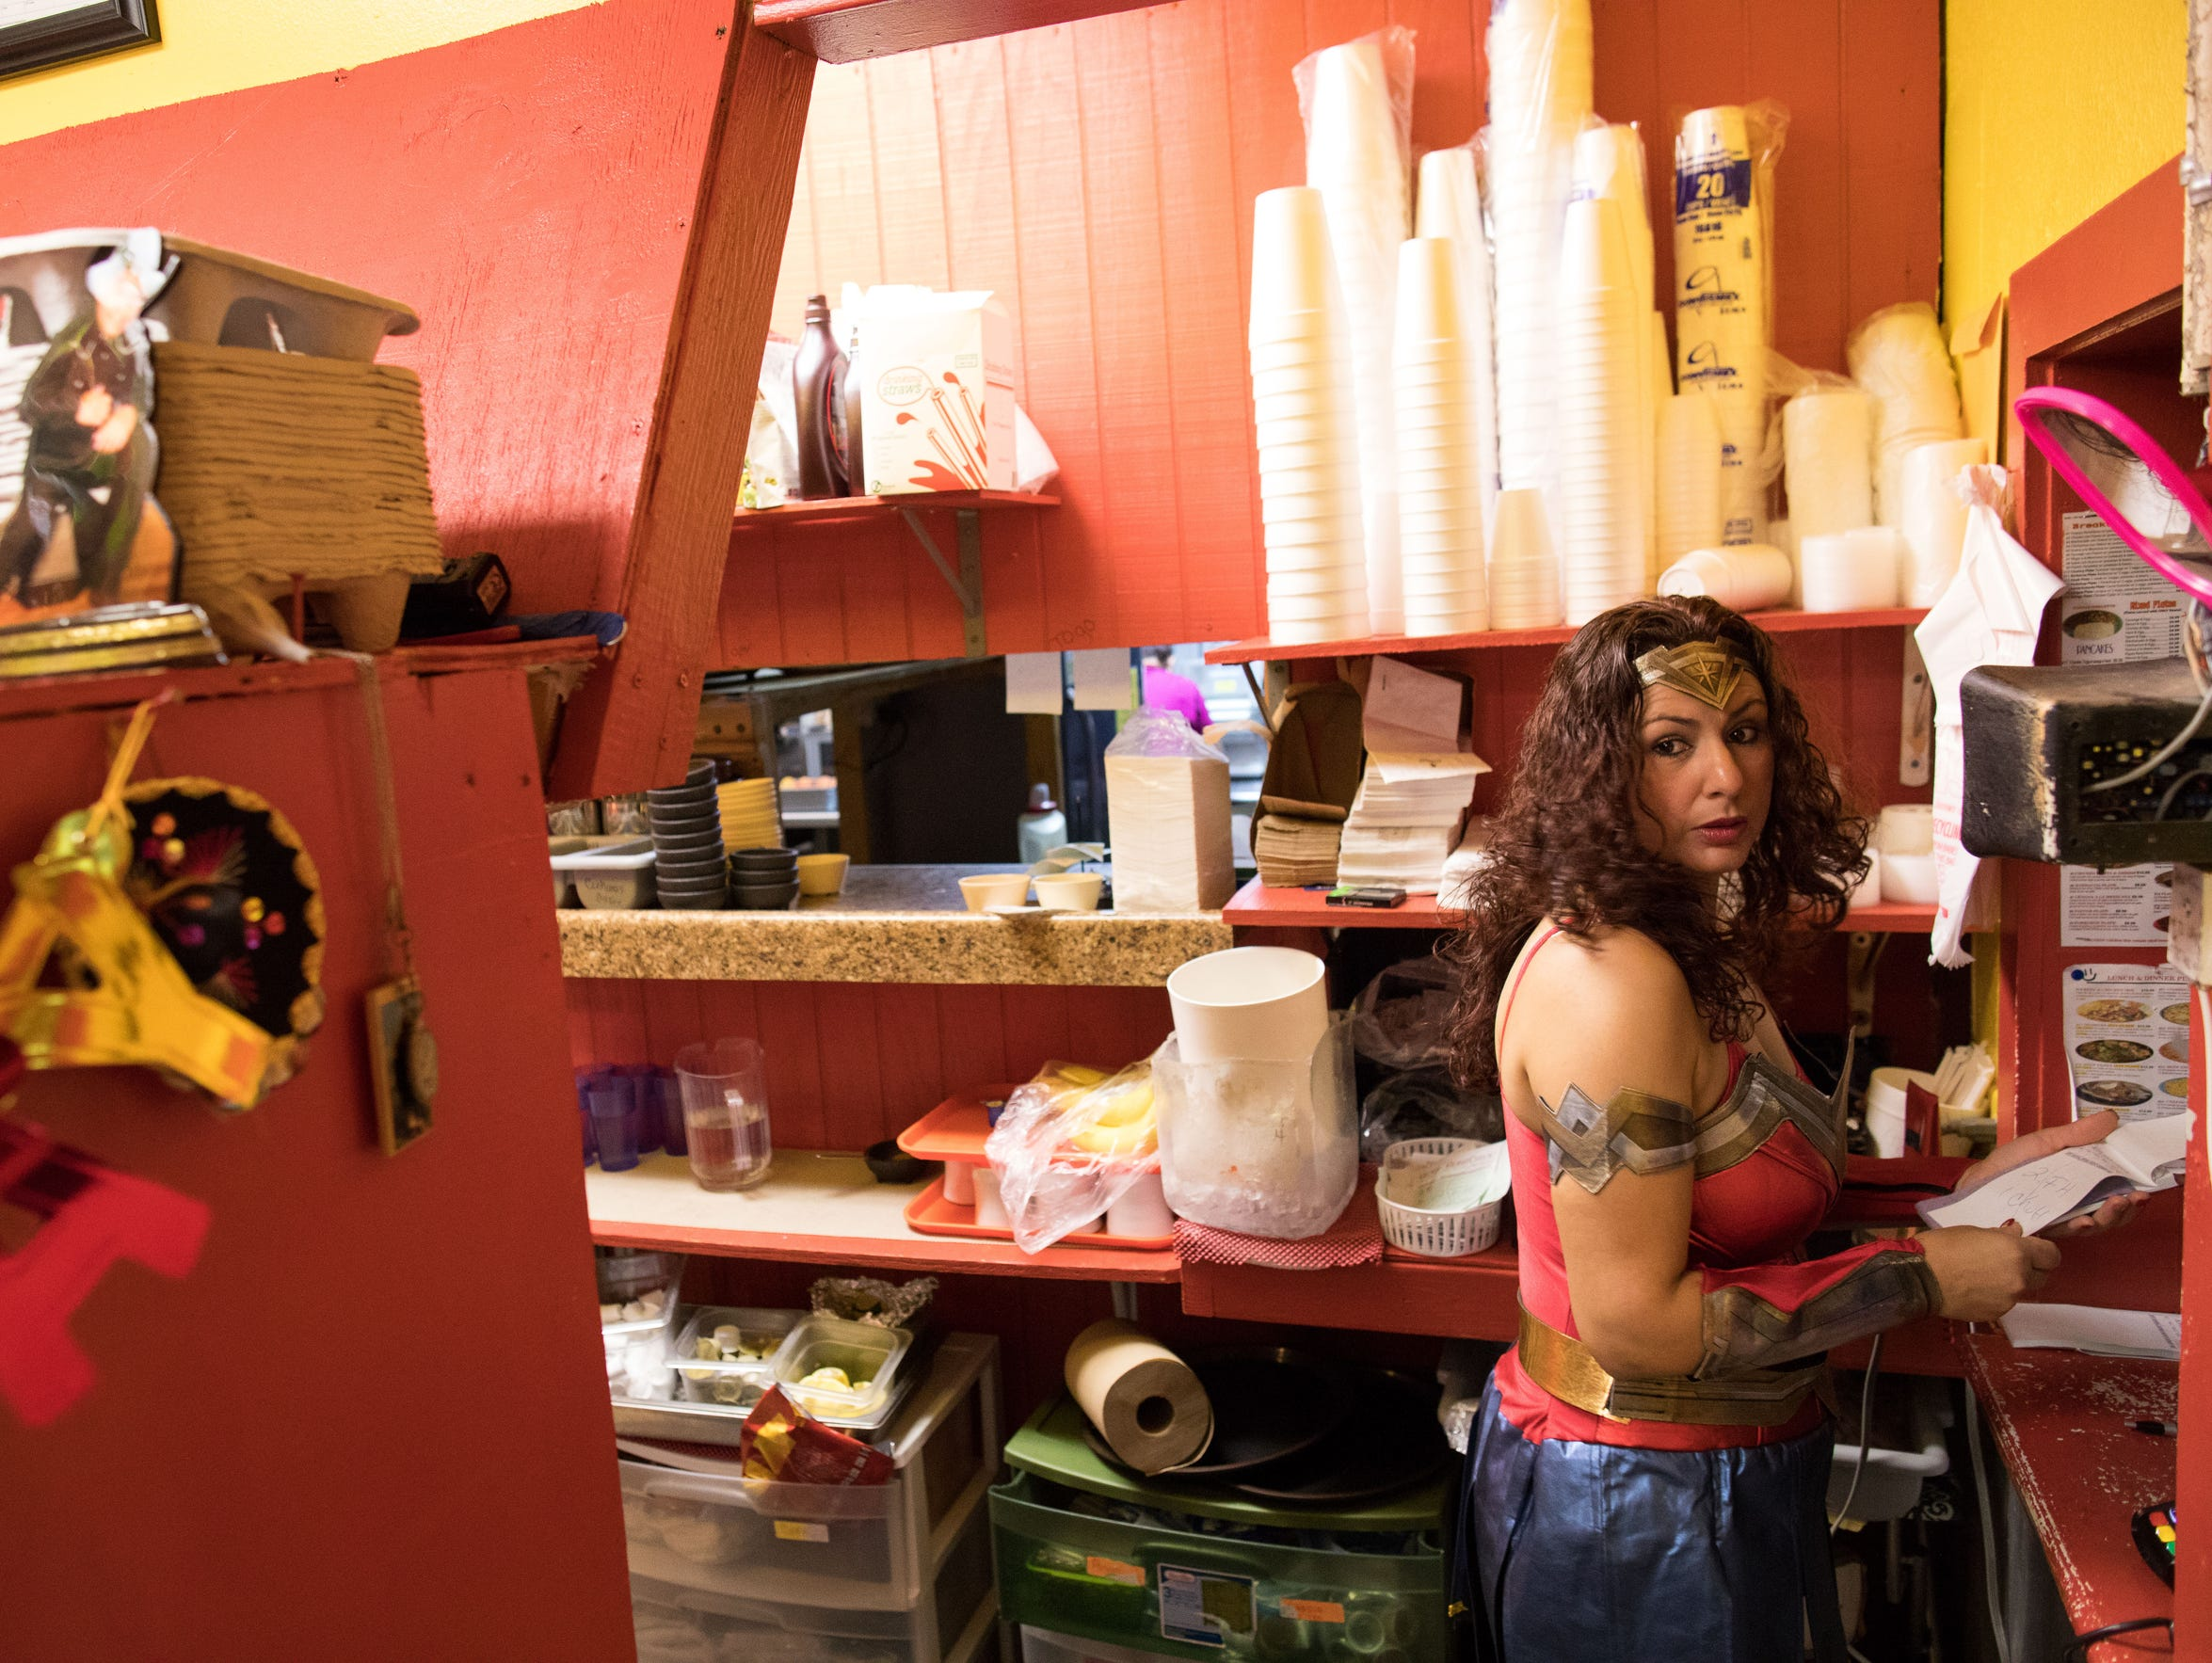 Monica Rocha Alcarez, clad in a Wonder Woman Halloween costume, looks over to the front door of Monica's Restaurant on Oct. 31, 2017. She was brought over from Mexico at the age of four. She's earned a business degree and since becoming a DACA recipient she's been able to become a business owner.